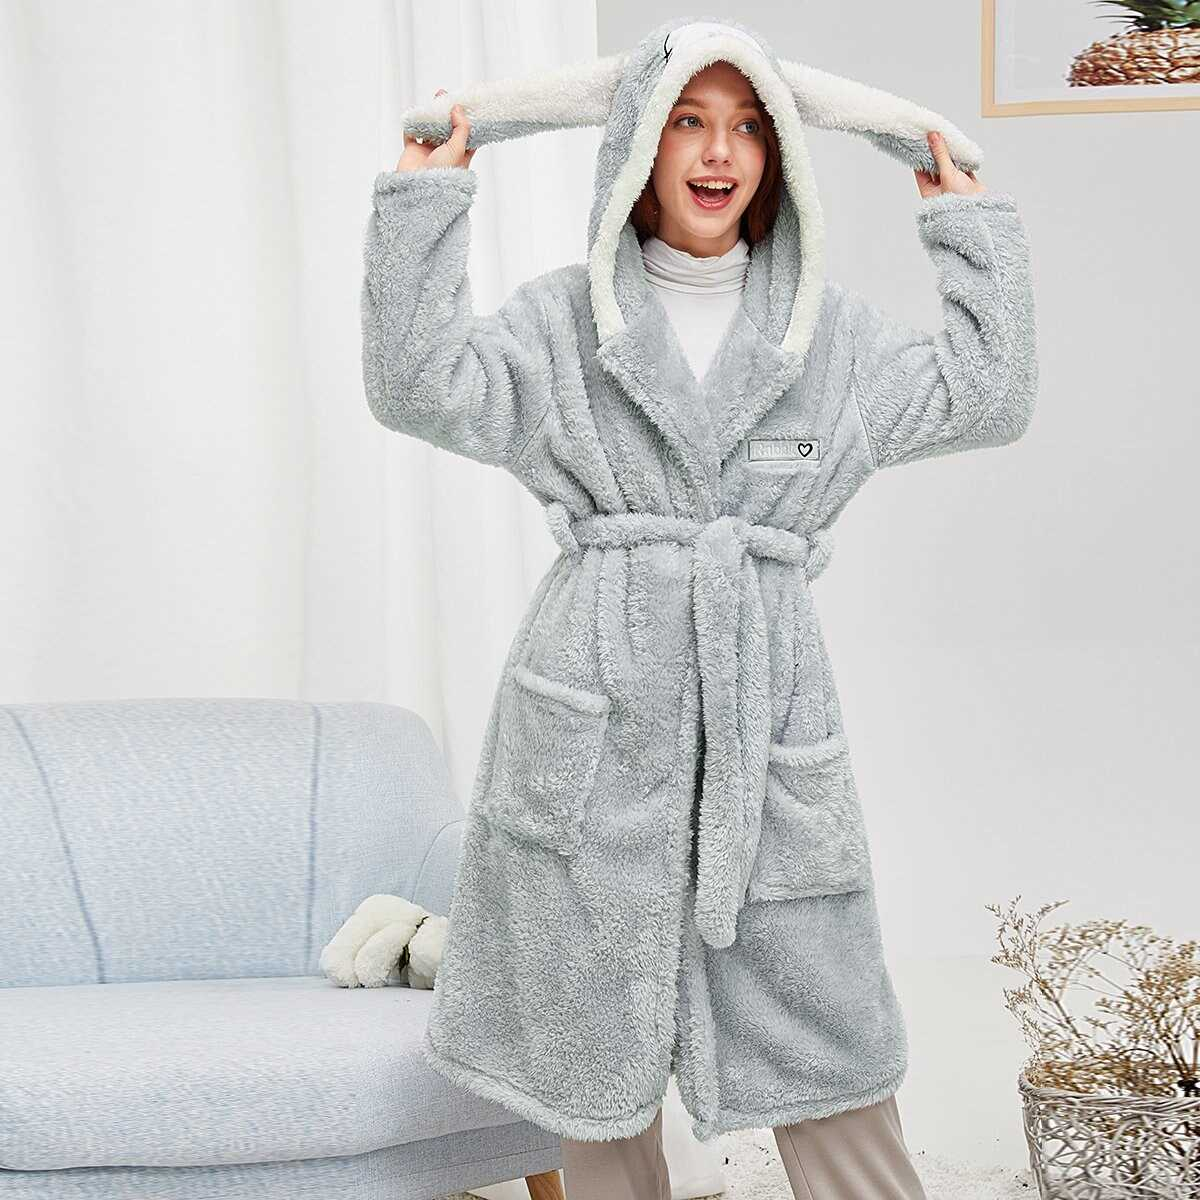 Rabbit Self Belted Plush Robe in Grey by ROMWE on GOOFASH